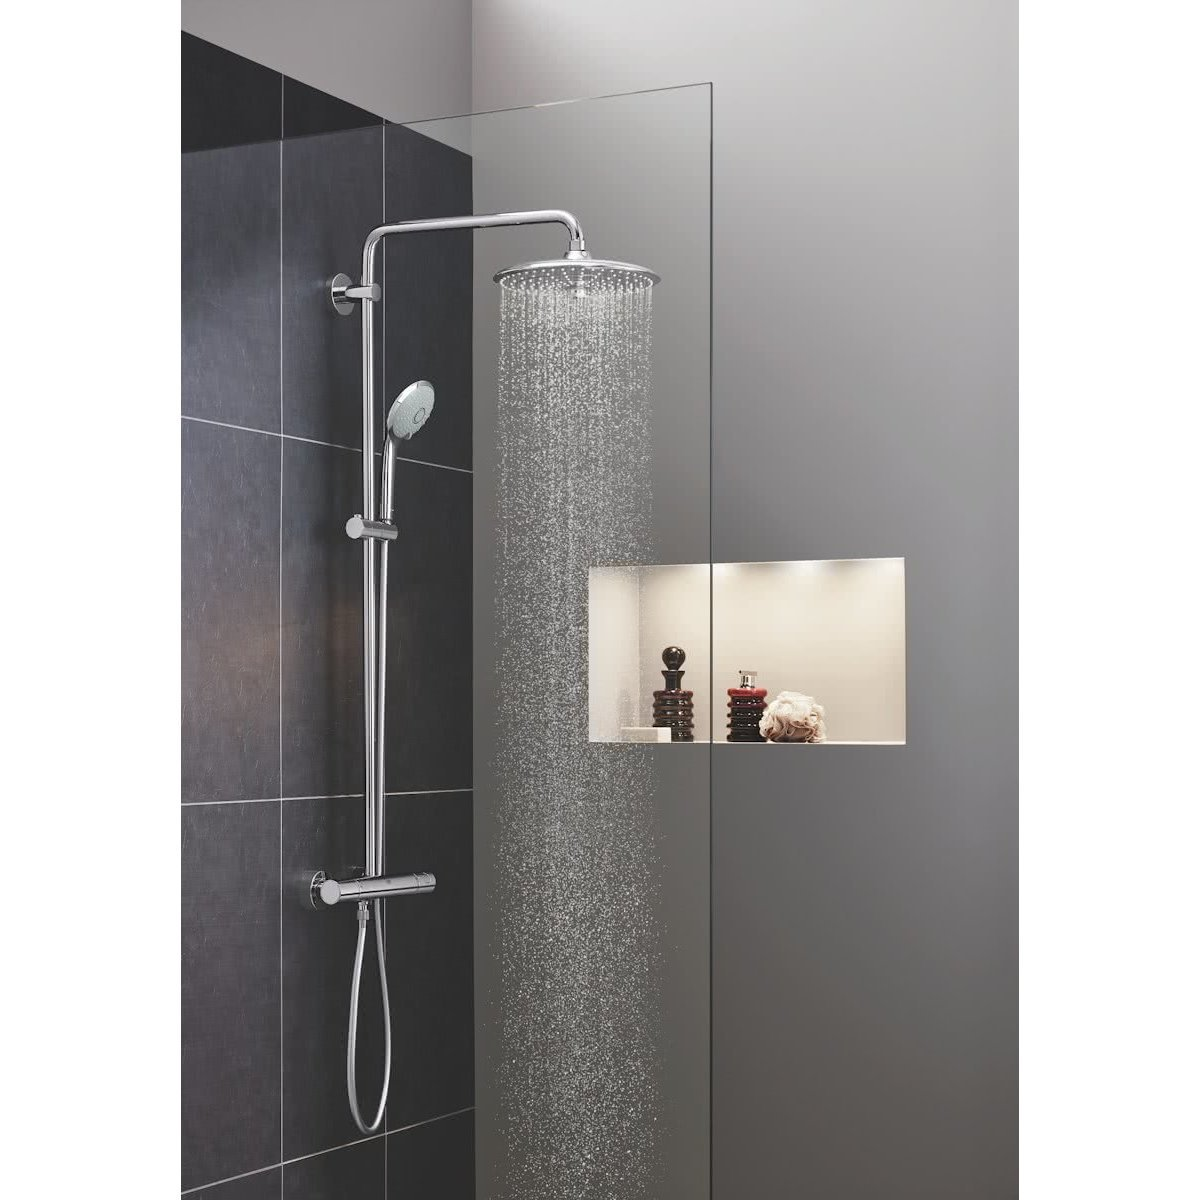 grohe euphoria ensemble de douche avec robinet. Black Bedroom Furniture Sets. Home Design Ideas